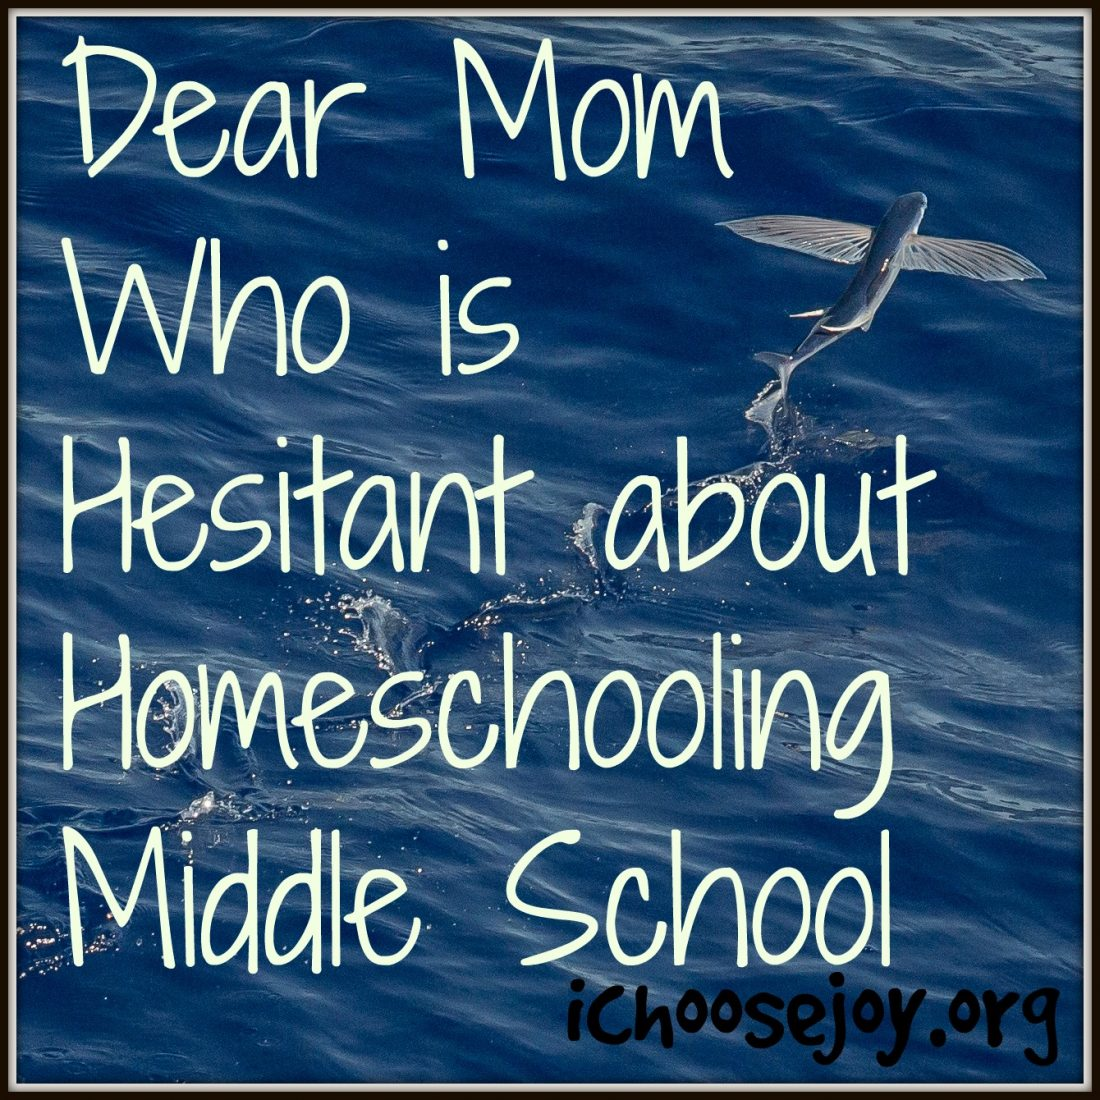 Dear Mom Who is Hesitant about Homeschooling Middle School